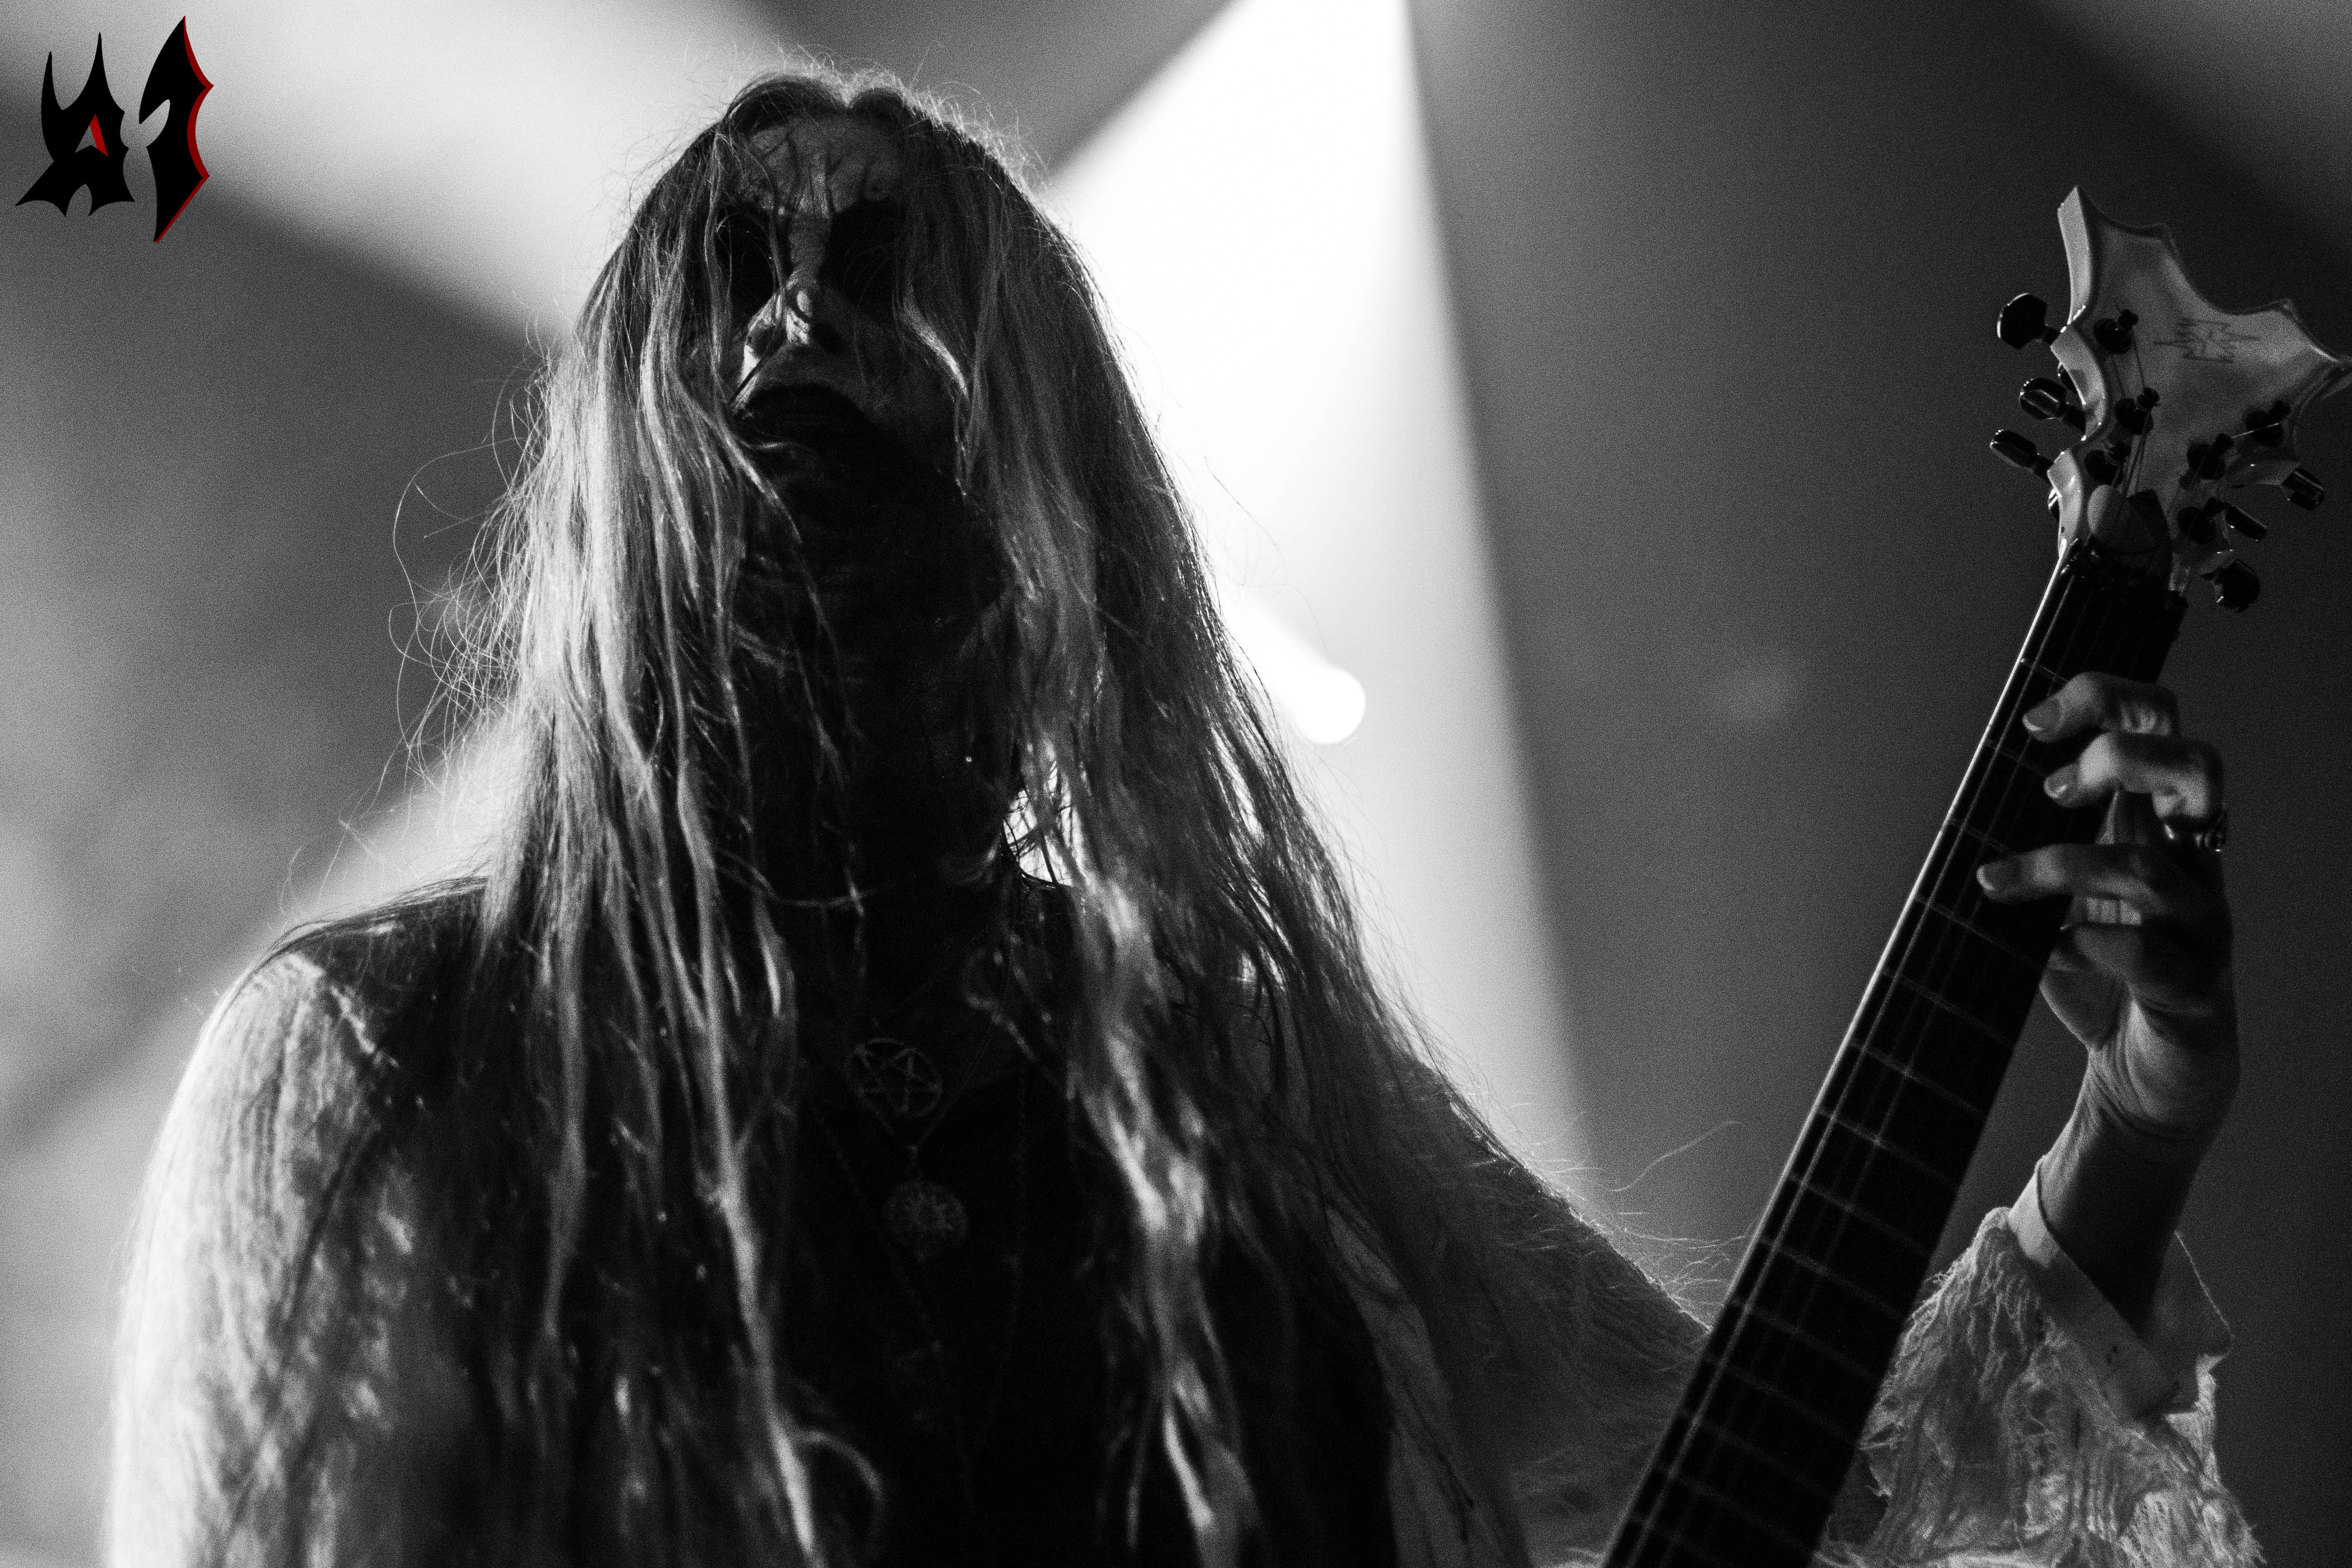 Darkened Nocturn Slaughtercult - 23